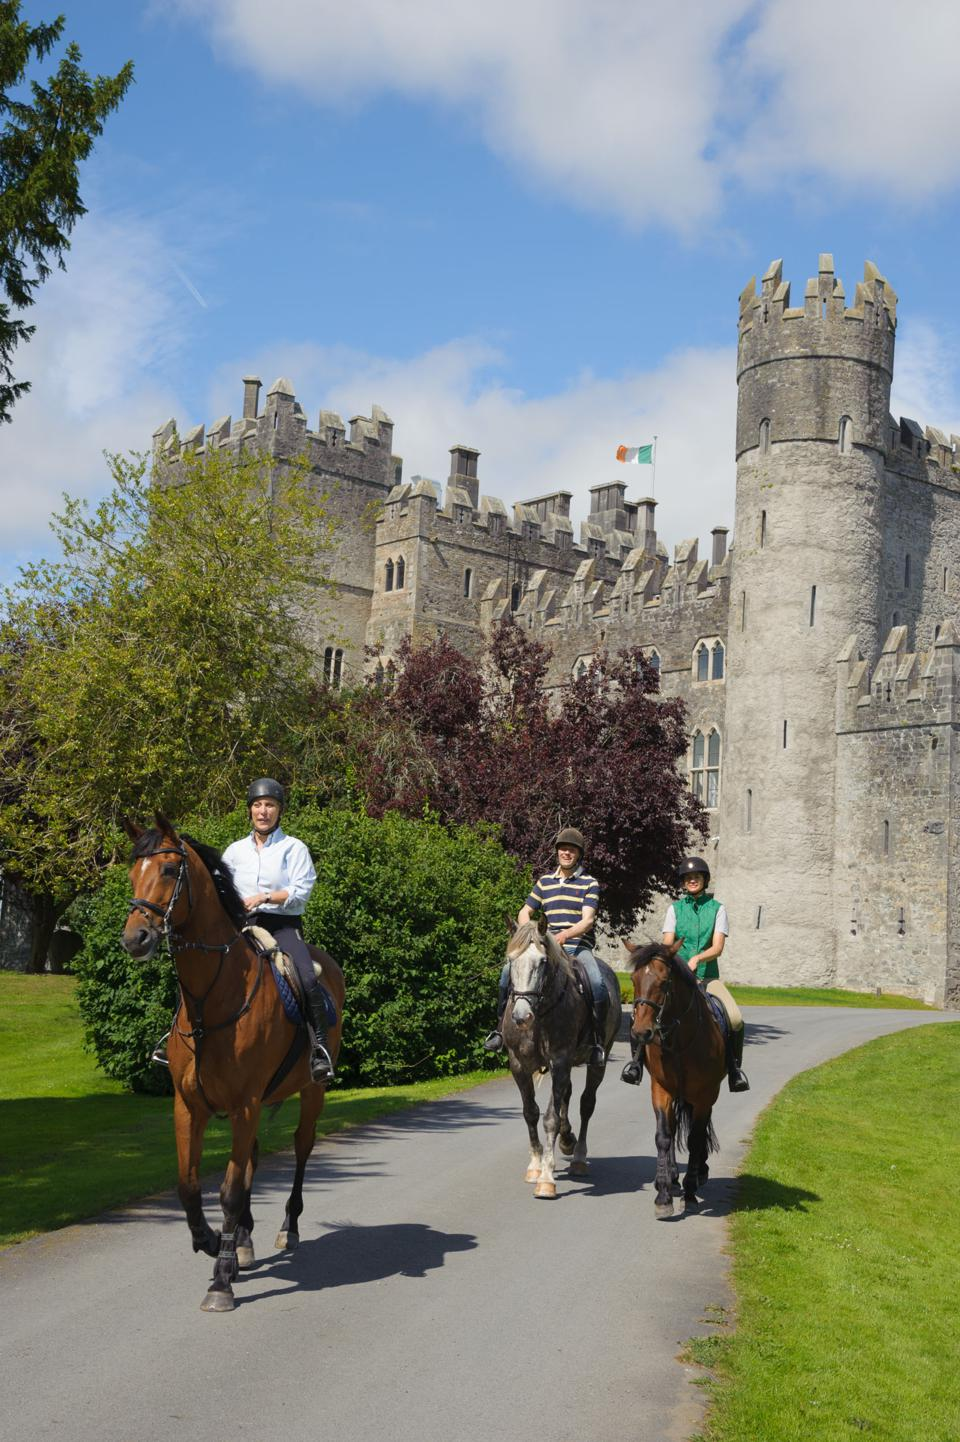 Three people on horseback on a path with  the stone walls and turrets of Kilkea Castle in the background